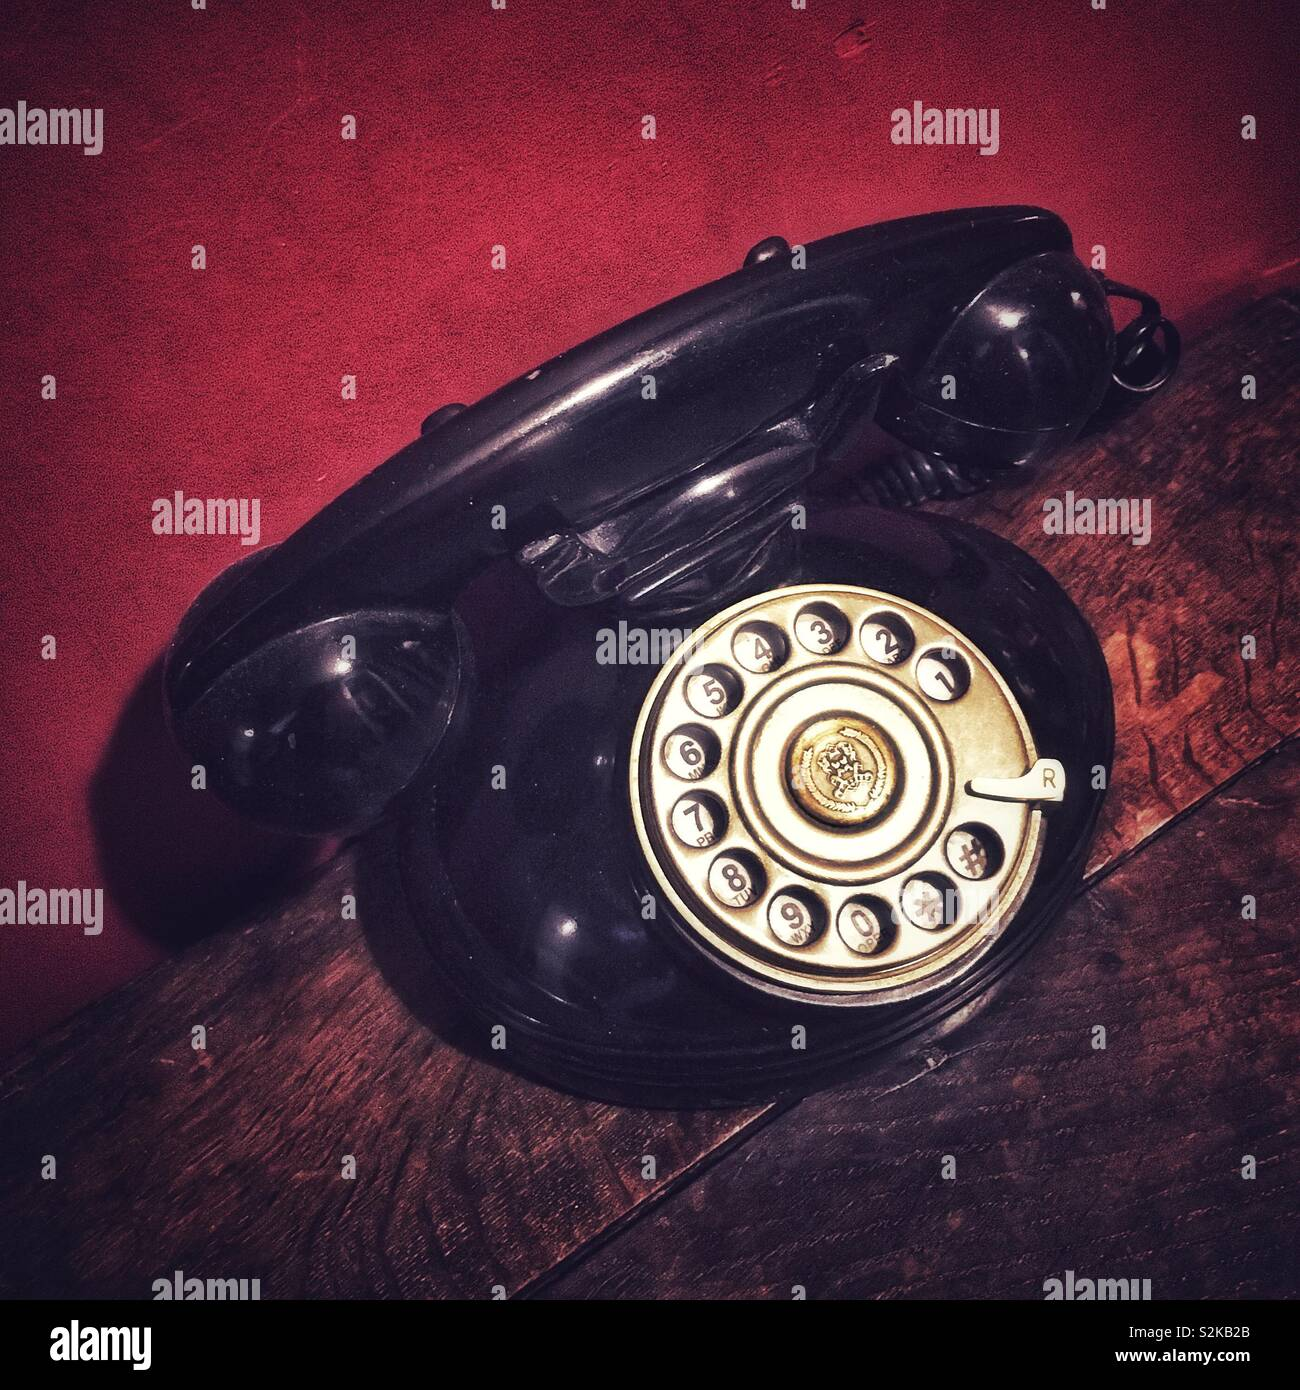 Old telephone with handset and dial - Stock Image